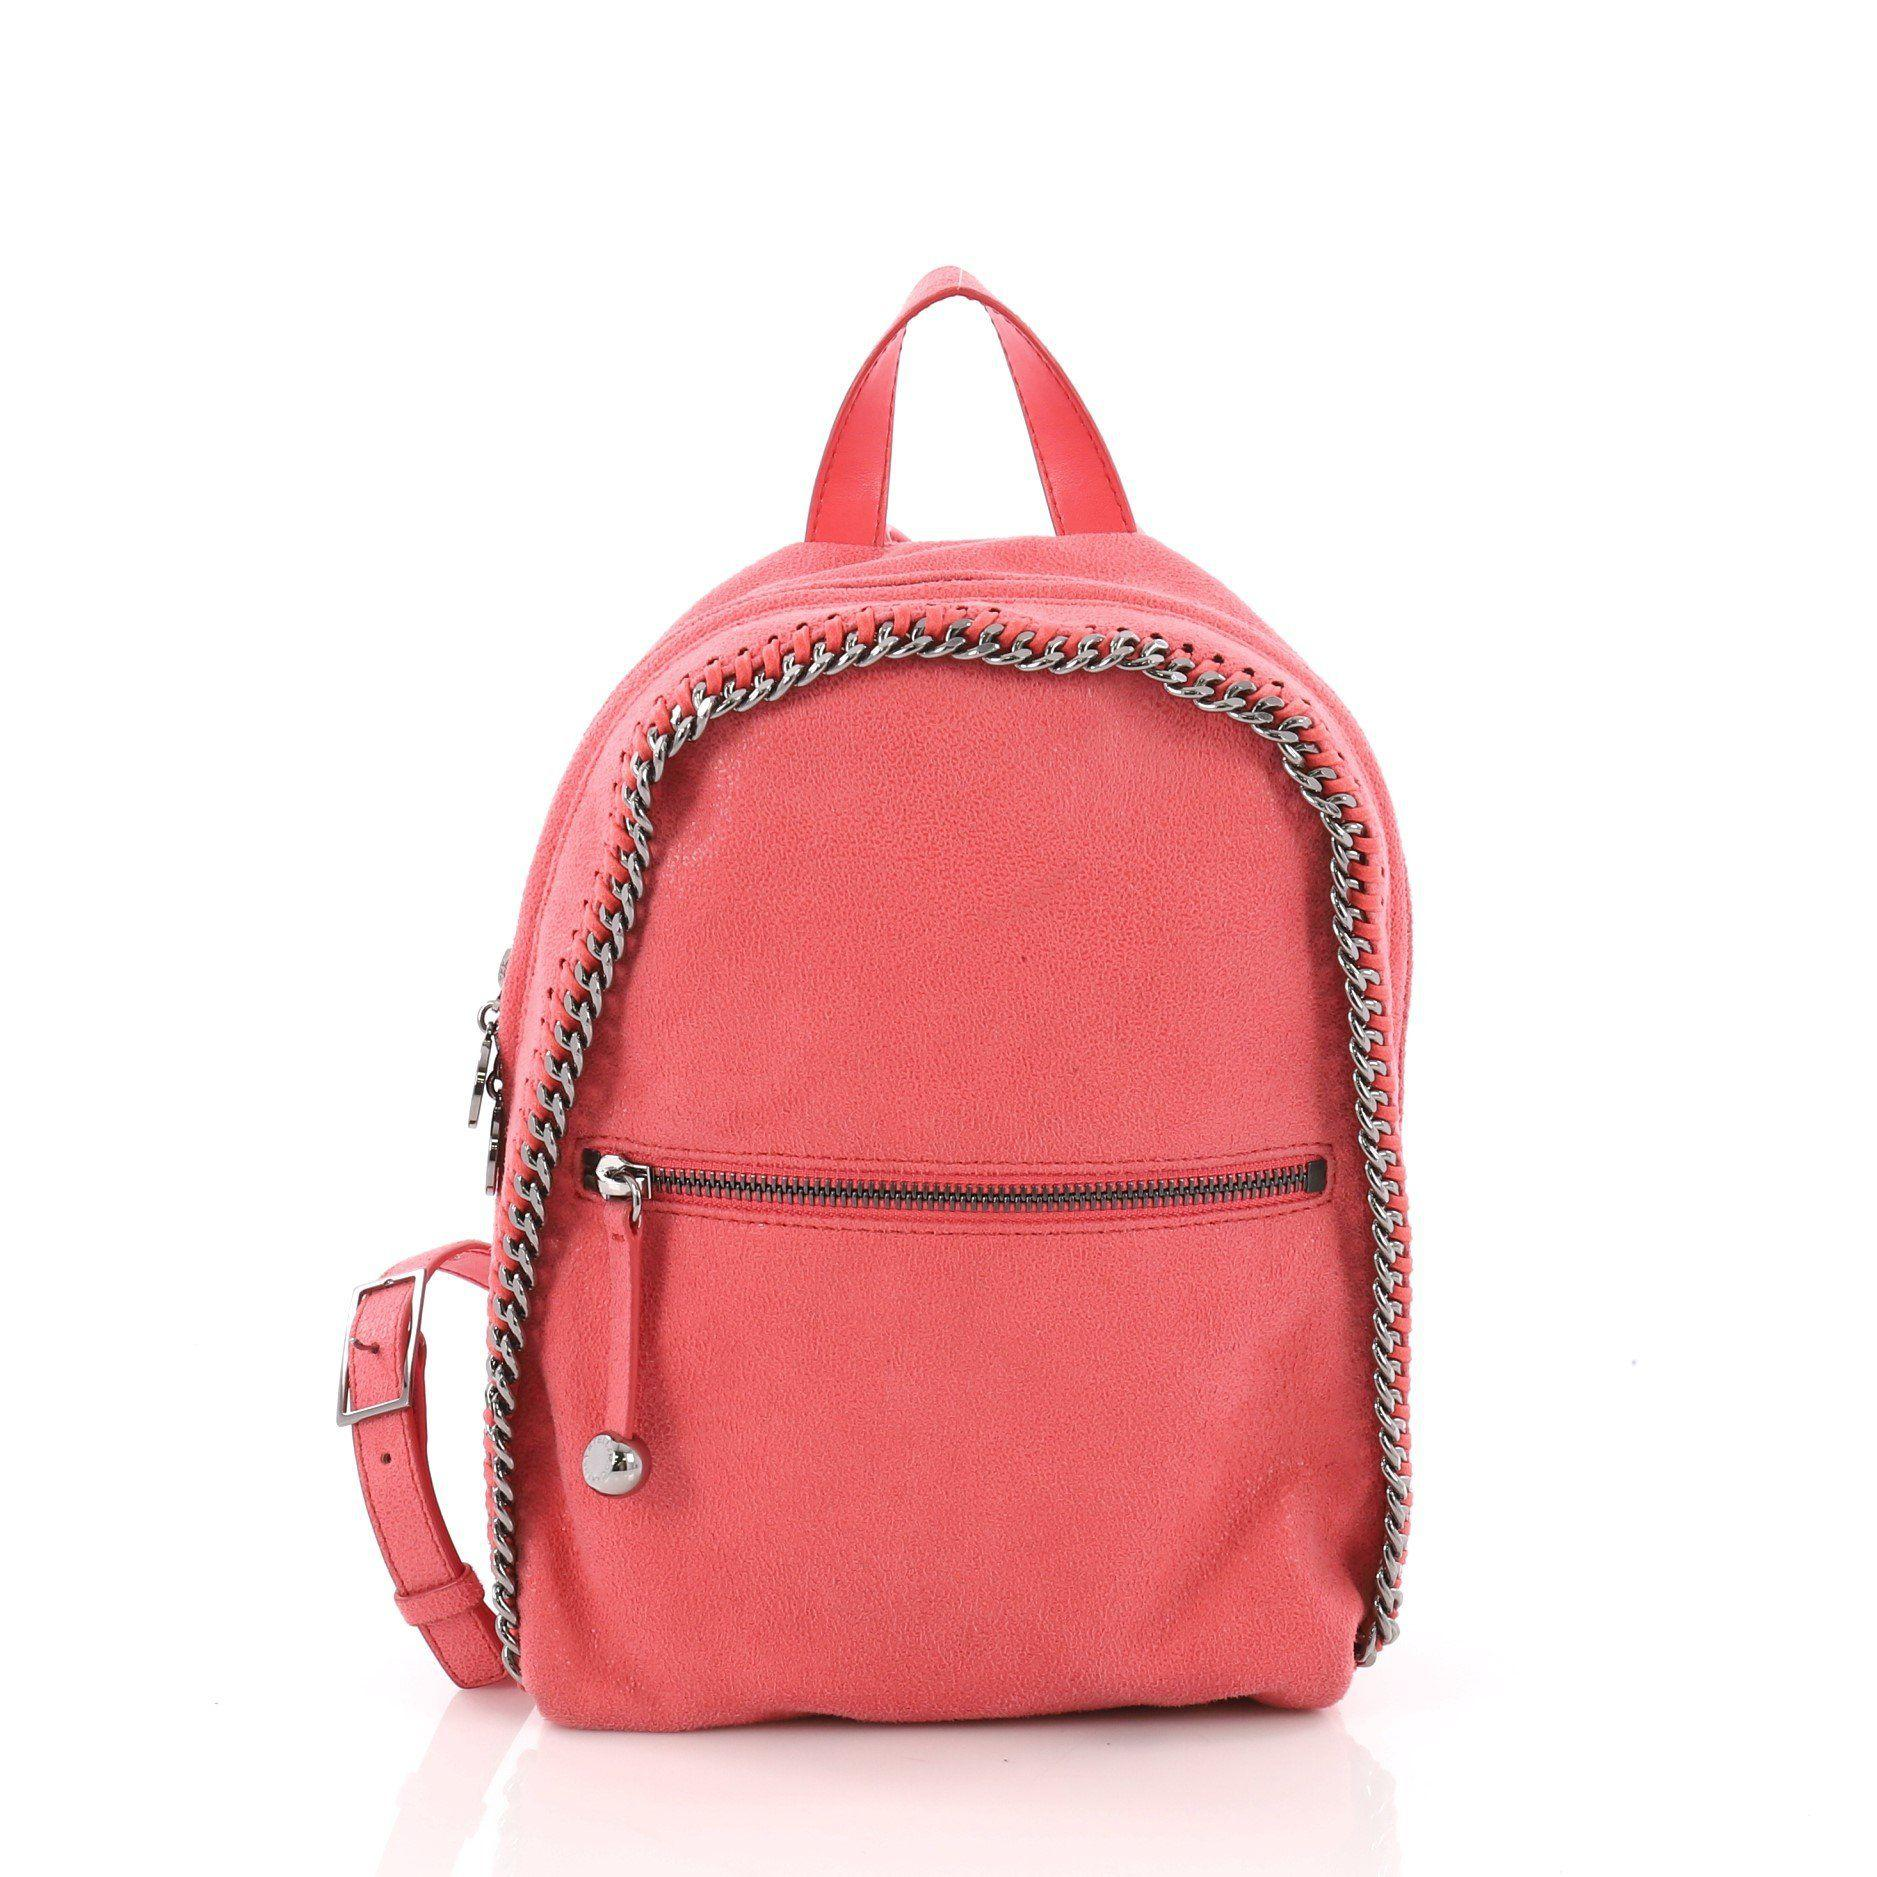 a03c1a8662d7 Stella McCartney. Women s Pink Pre Owned Falabella Front Zip Backpack  Shaggy Deer Mini